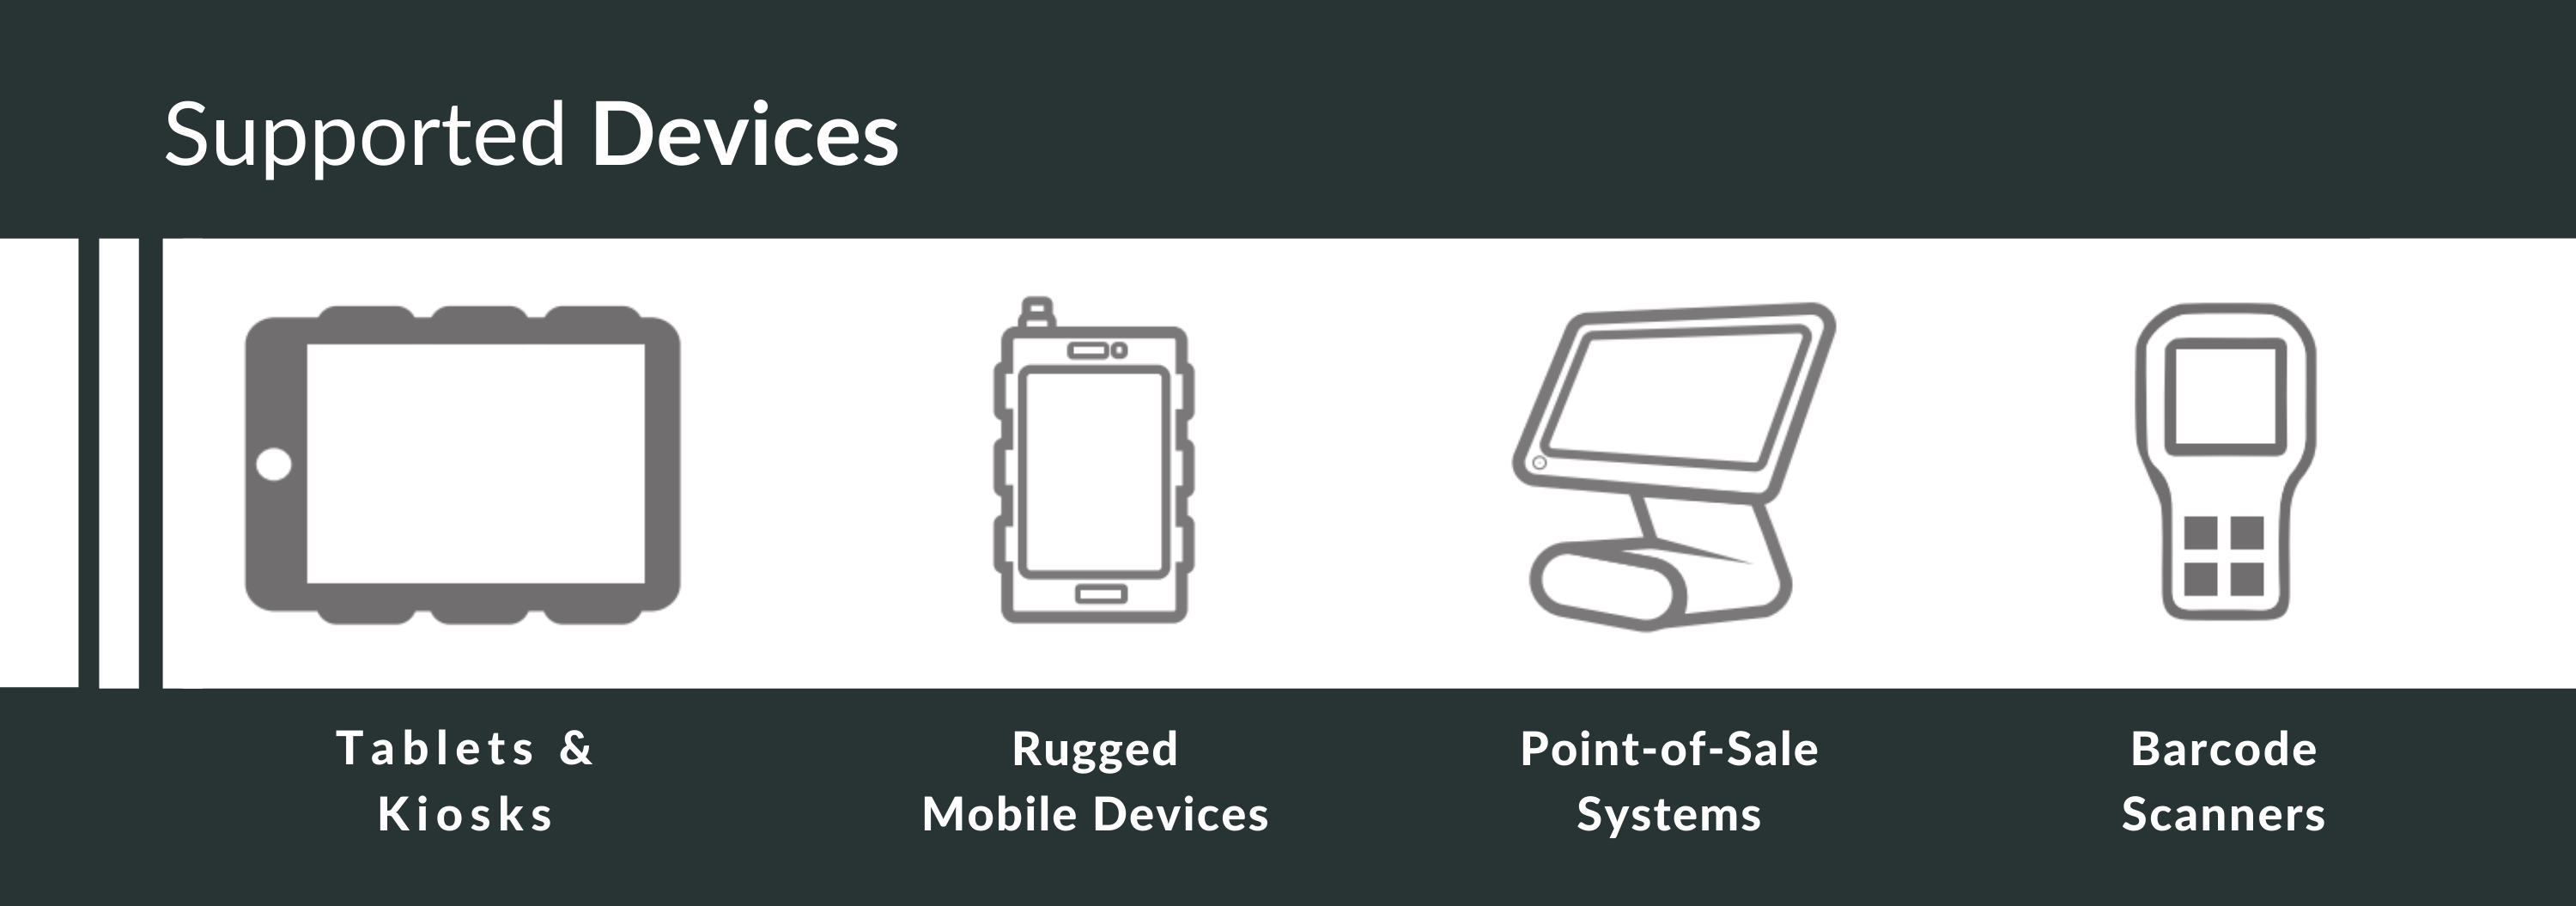 MDM-Devices